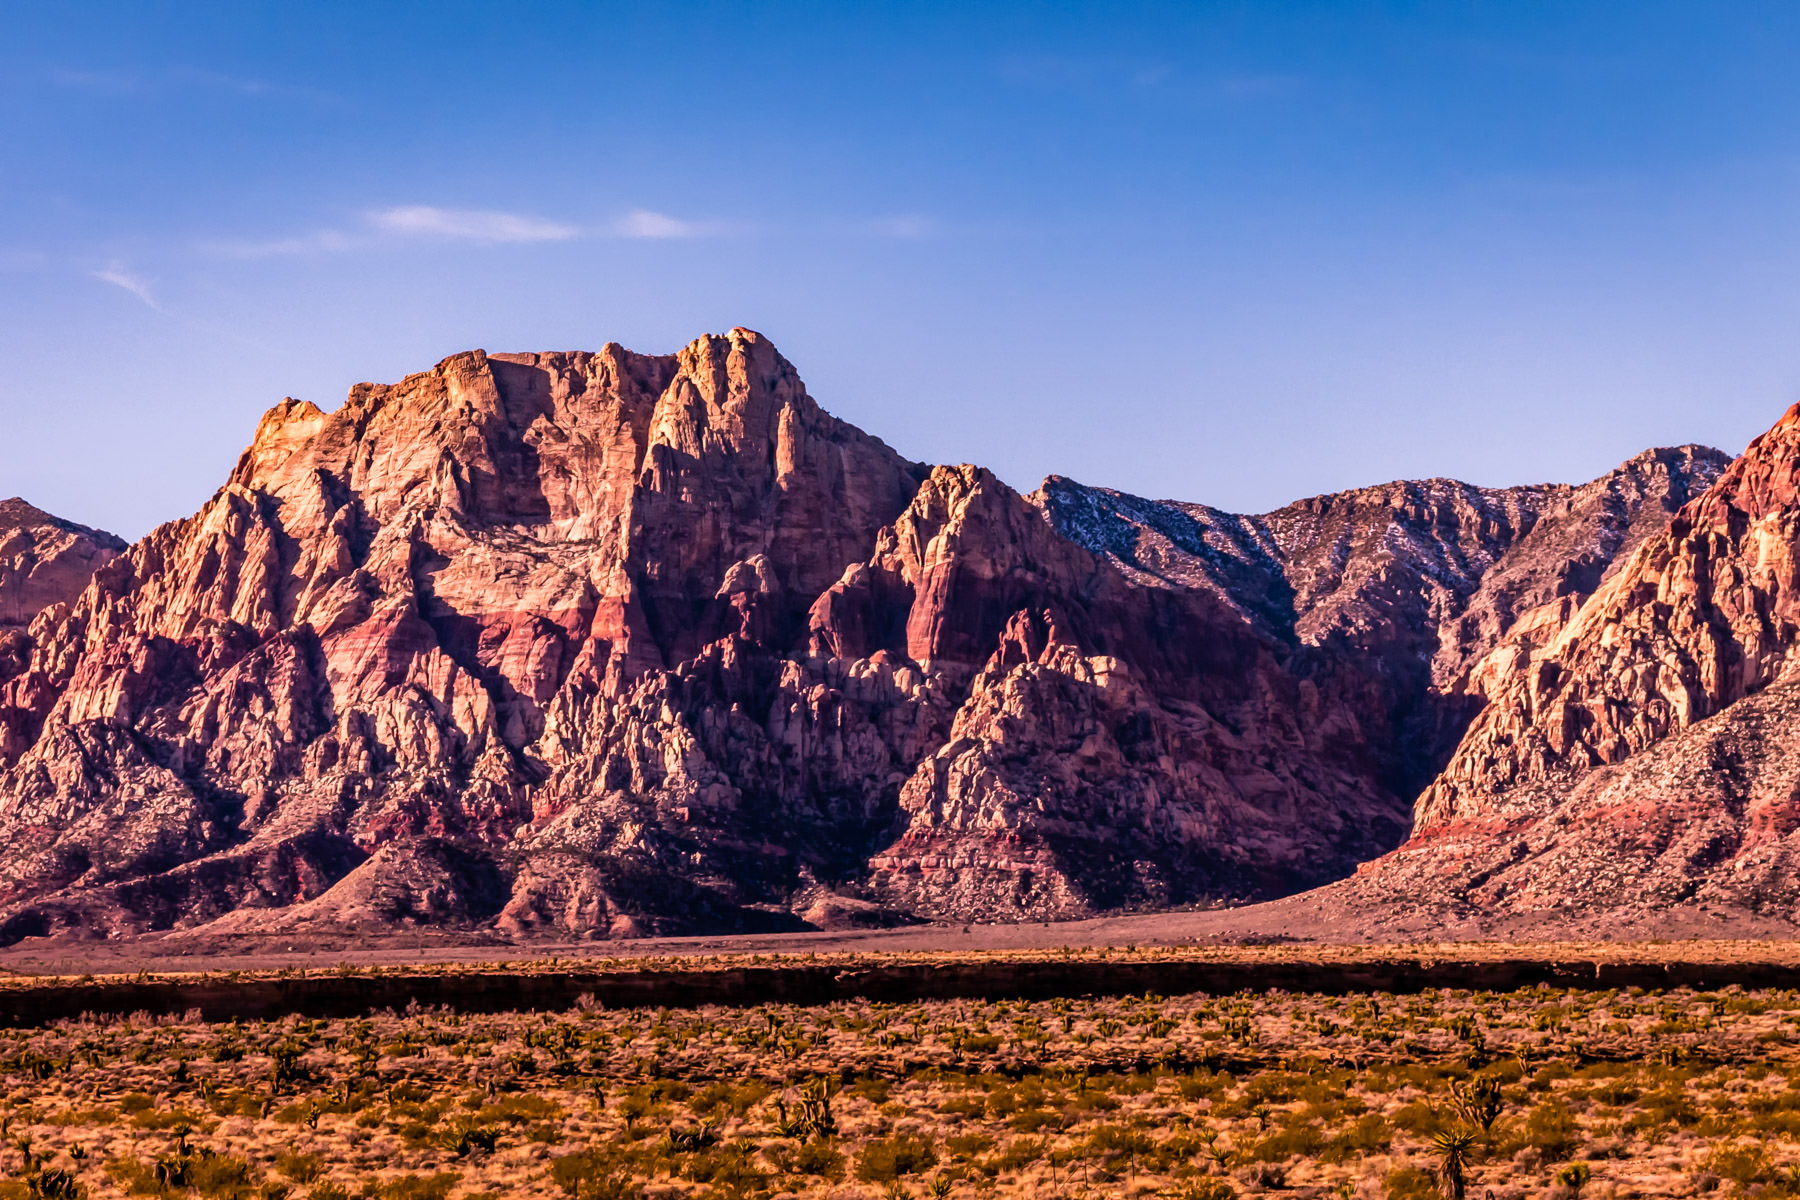 Mountains rise in the distance at Nevada's Red Rock Canyon.